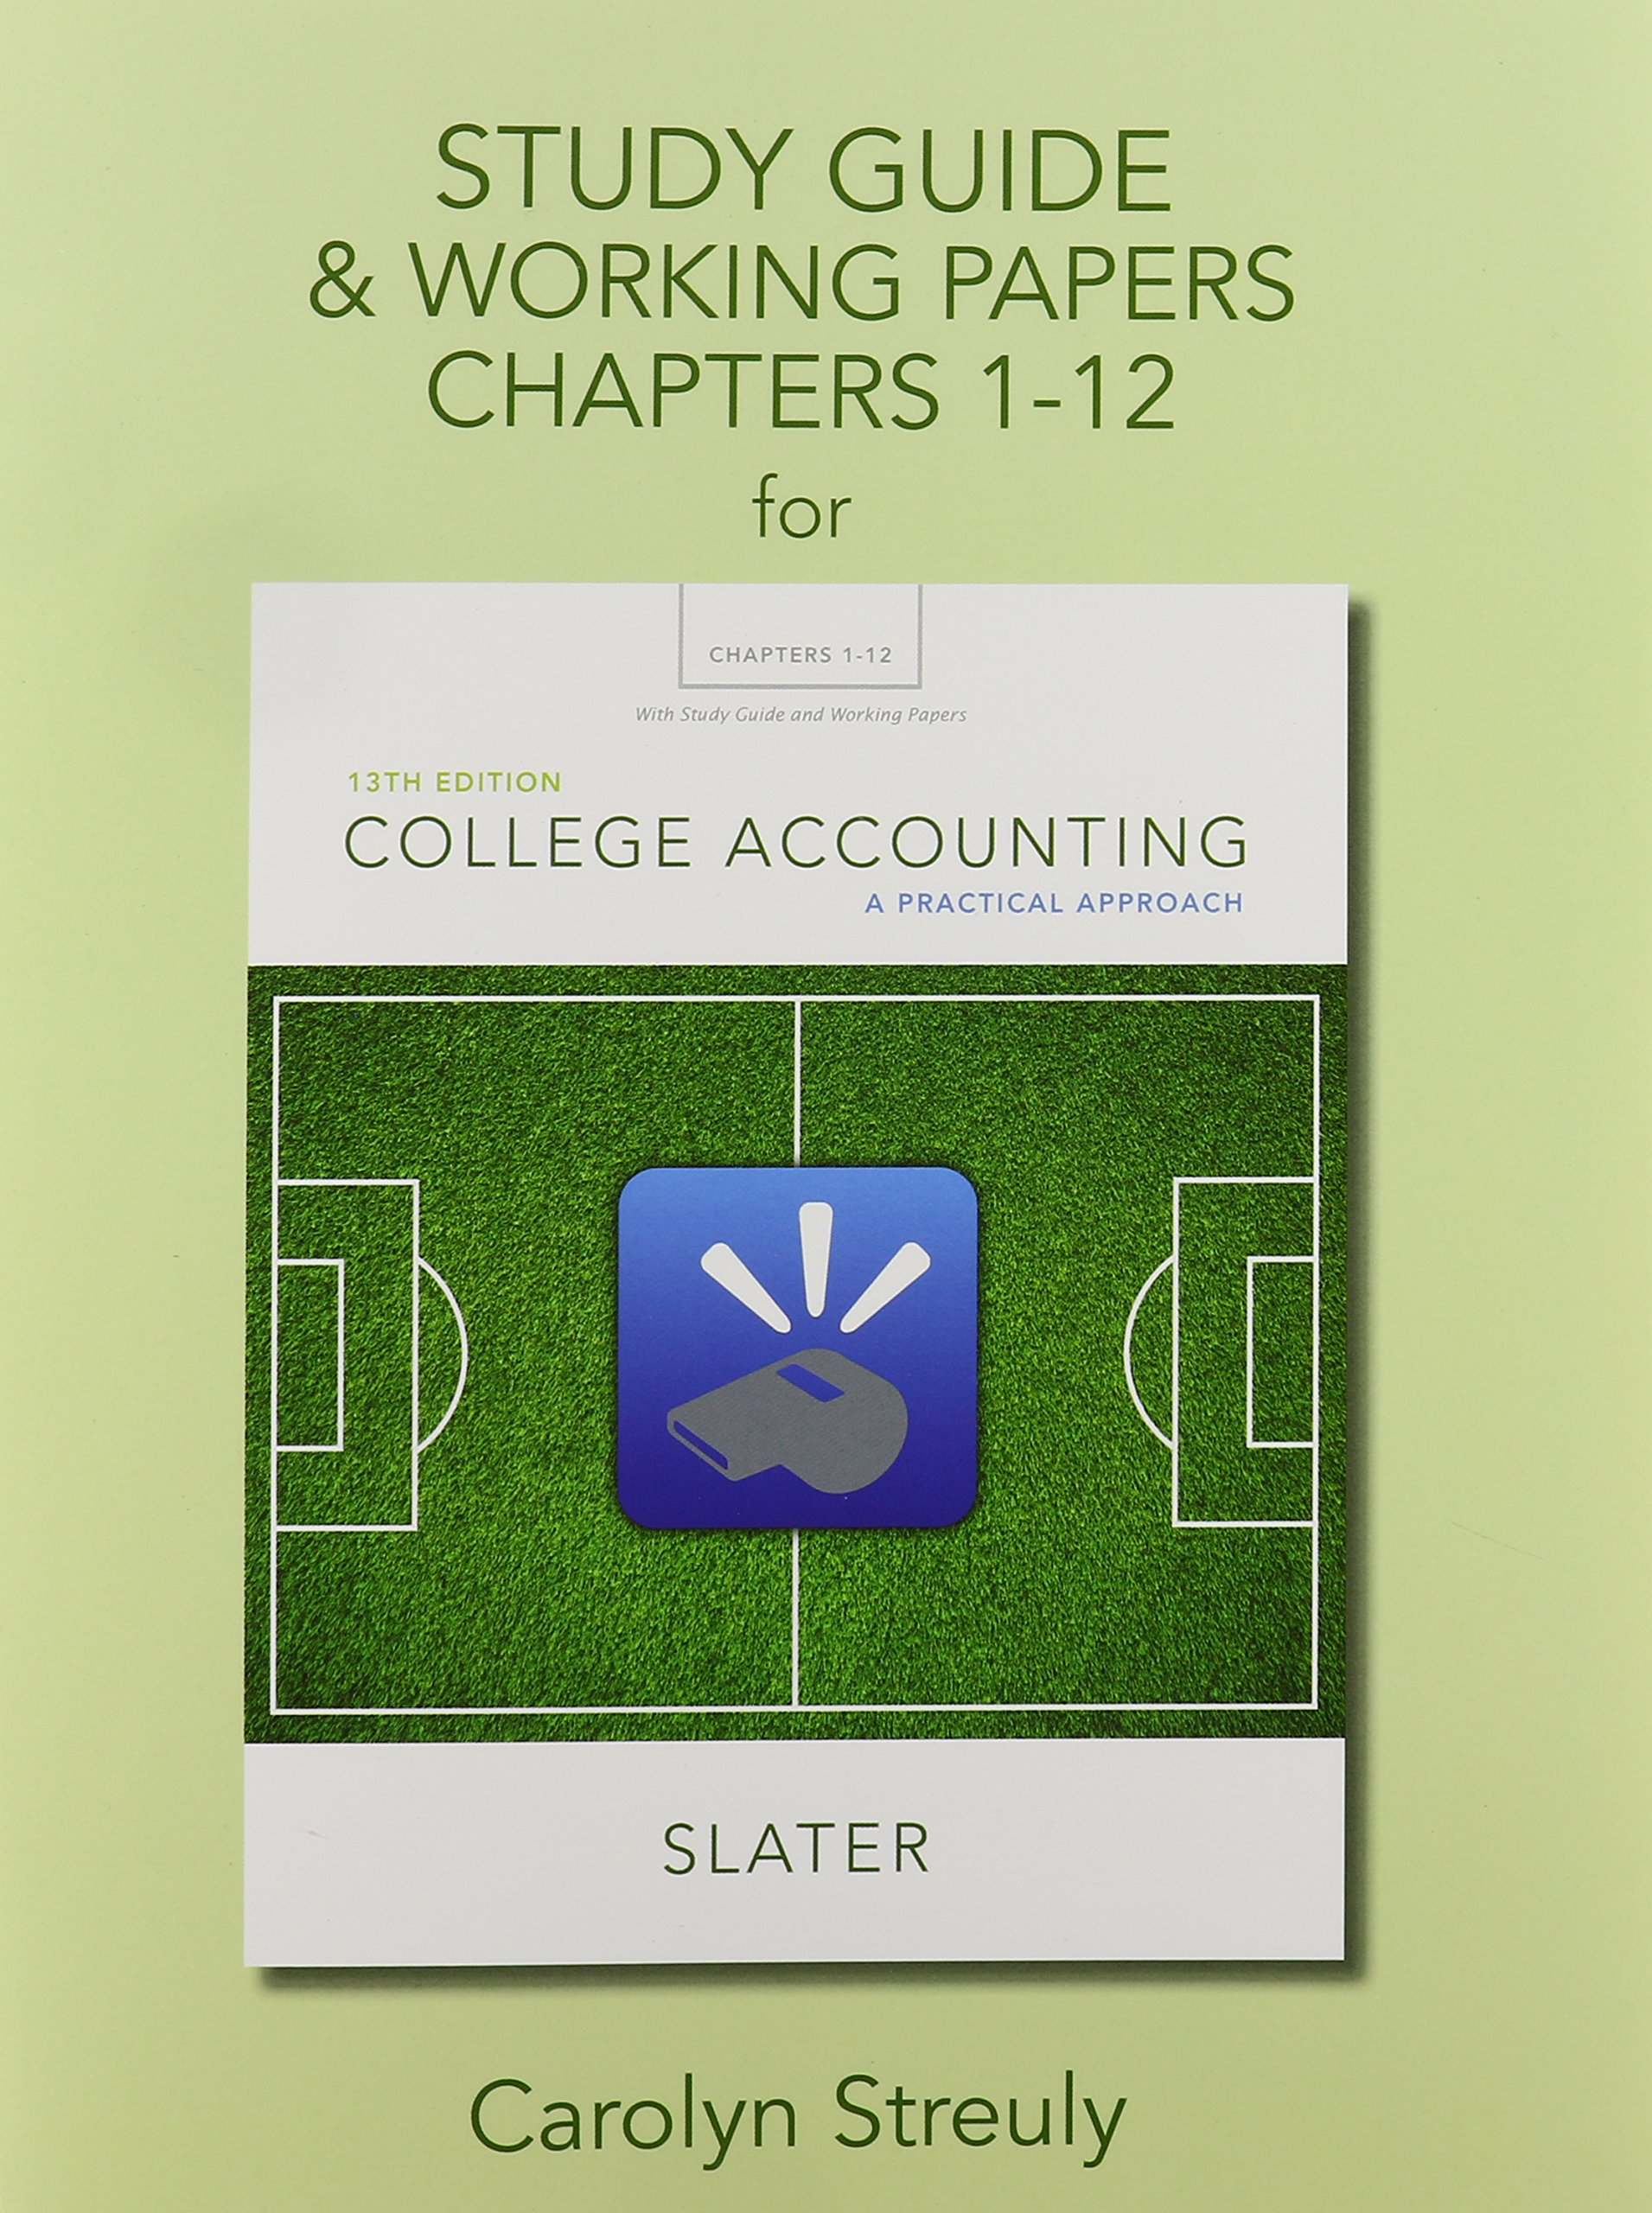 Study Guide & Working Papers for College Accounting: A Practical Approach,  Chapters 1-12: Jeffrey Slater: 9780133791501: Books - Amazon.ca